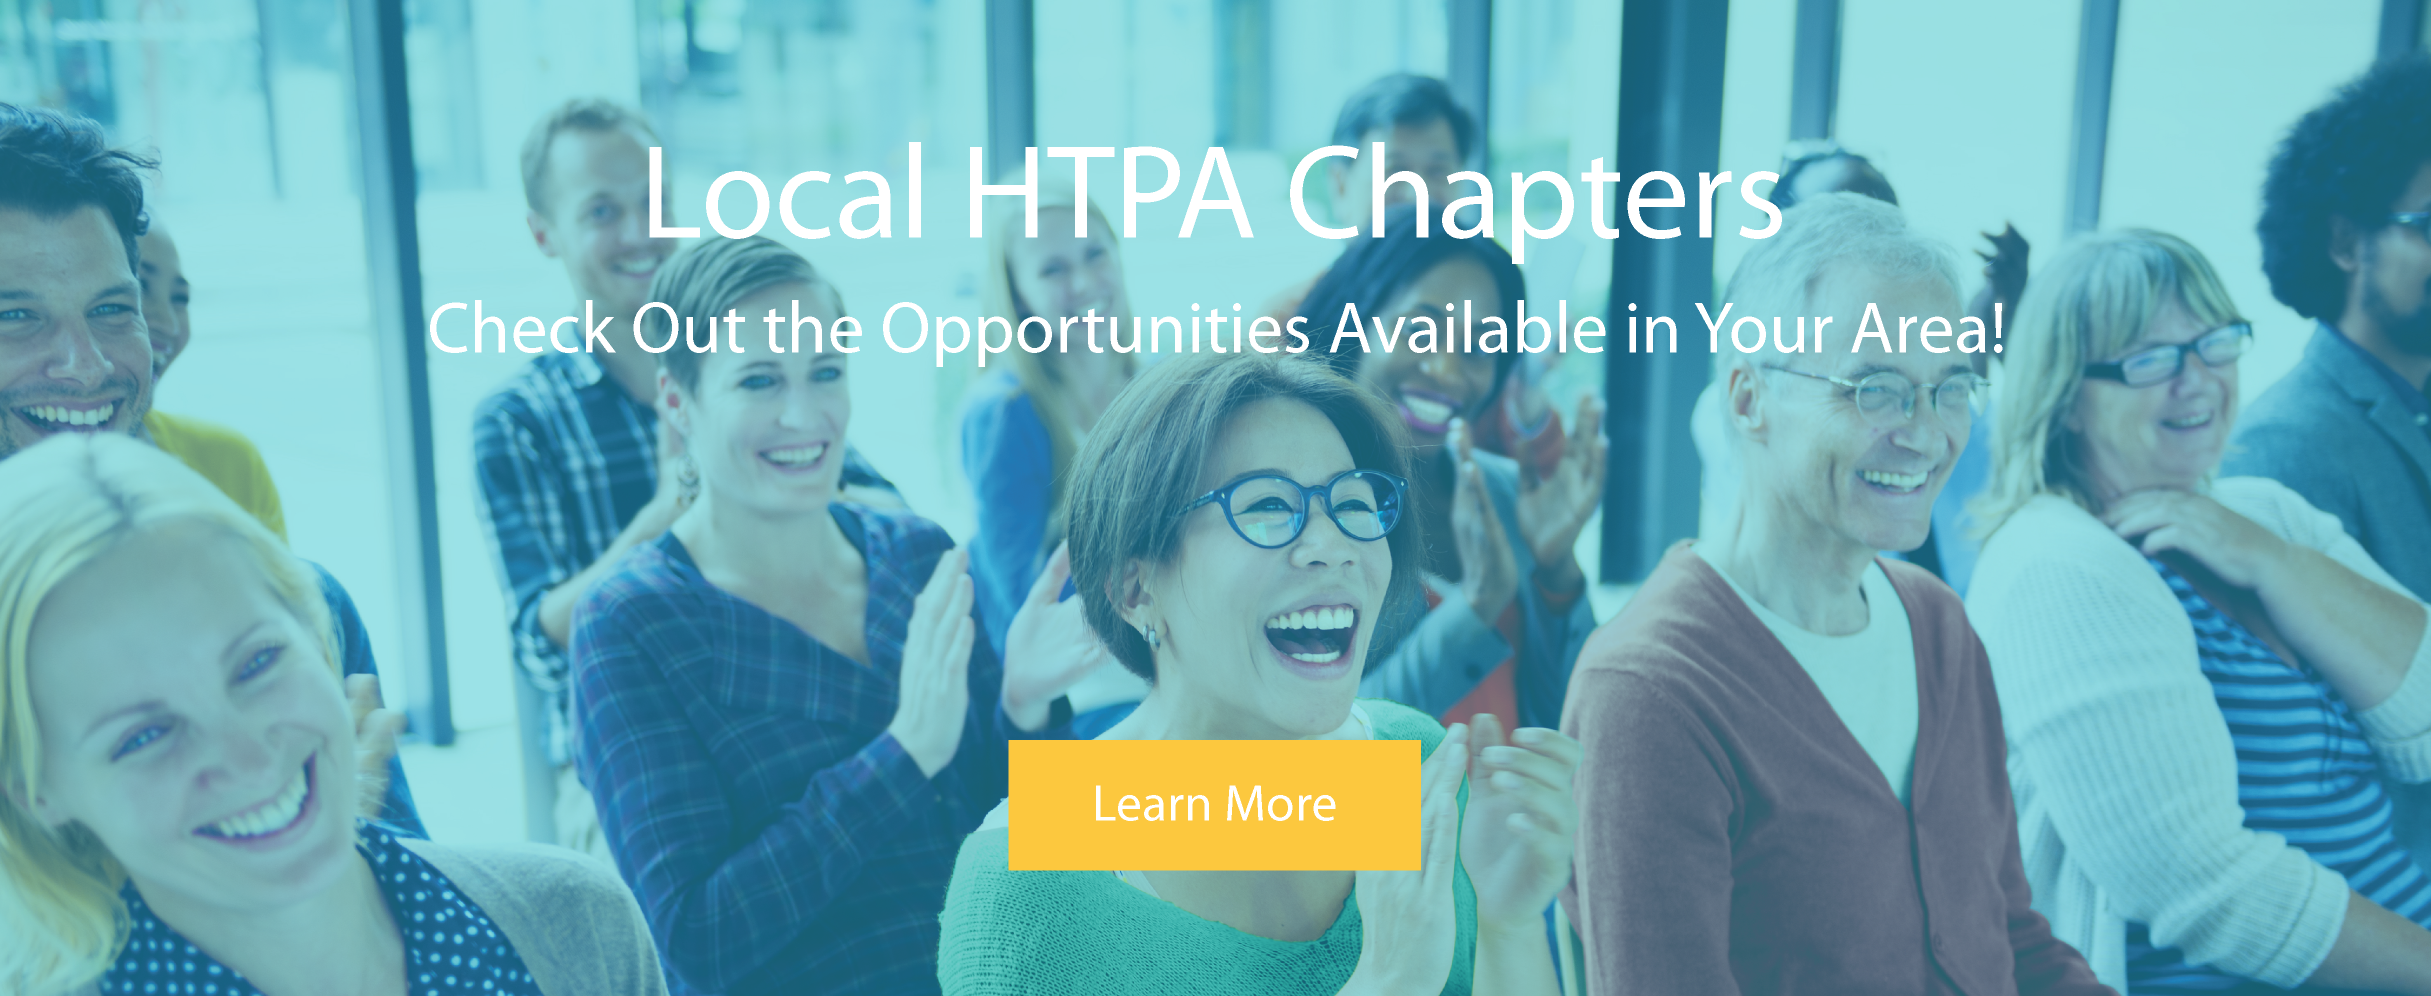 Local HTPA Chapters